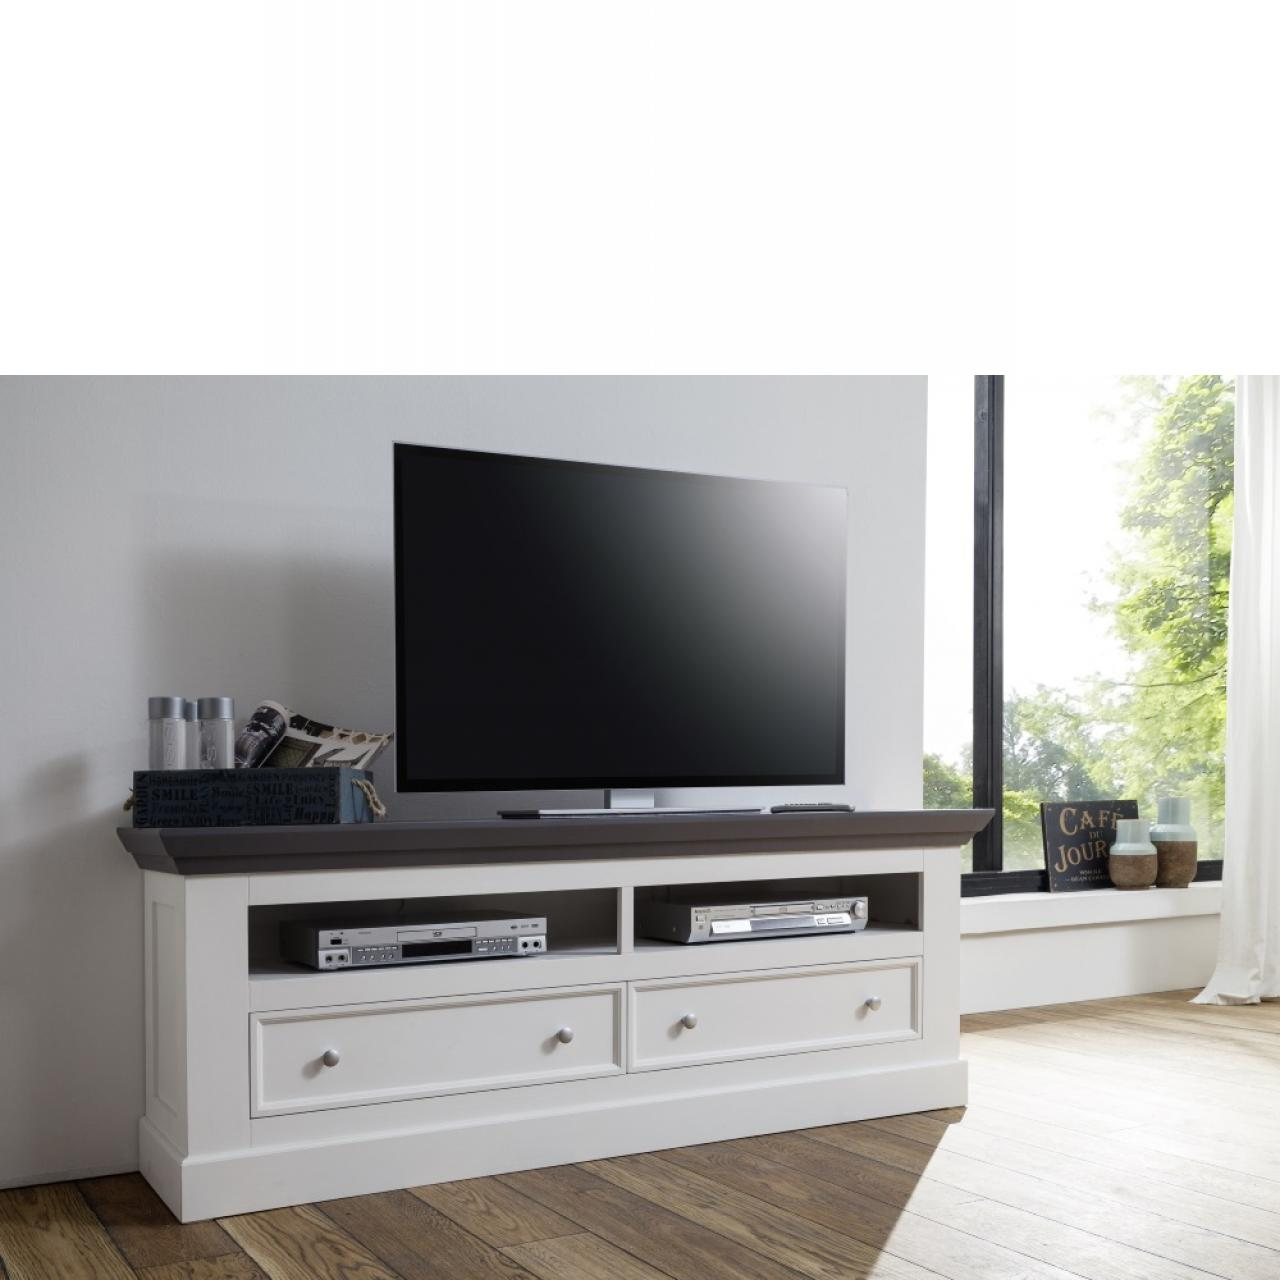 tv tisch massivholz massiver baumstamm tisch mammut cm akazie massivholz industrial look kufen. Black Bedroom Furniture Sets. Home Design Ideas